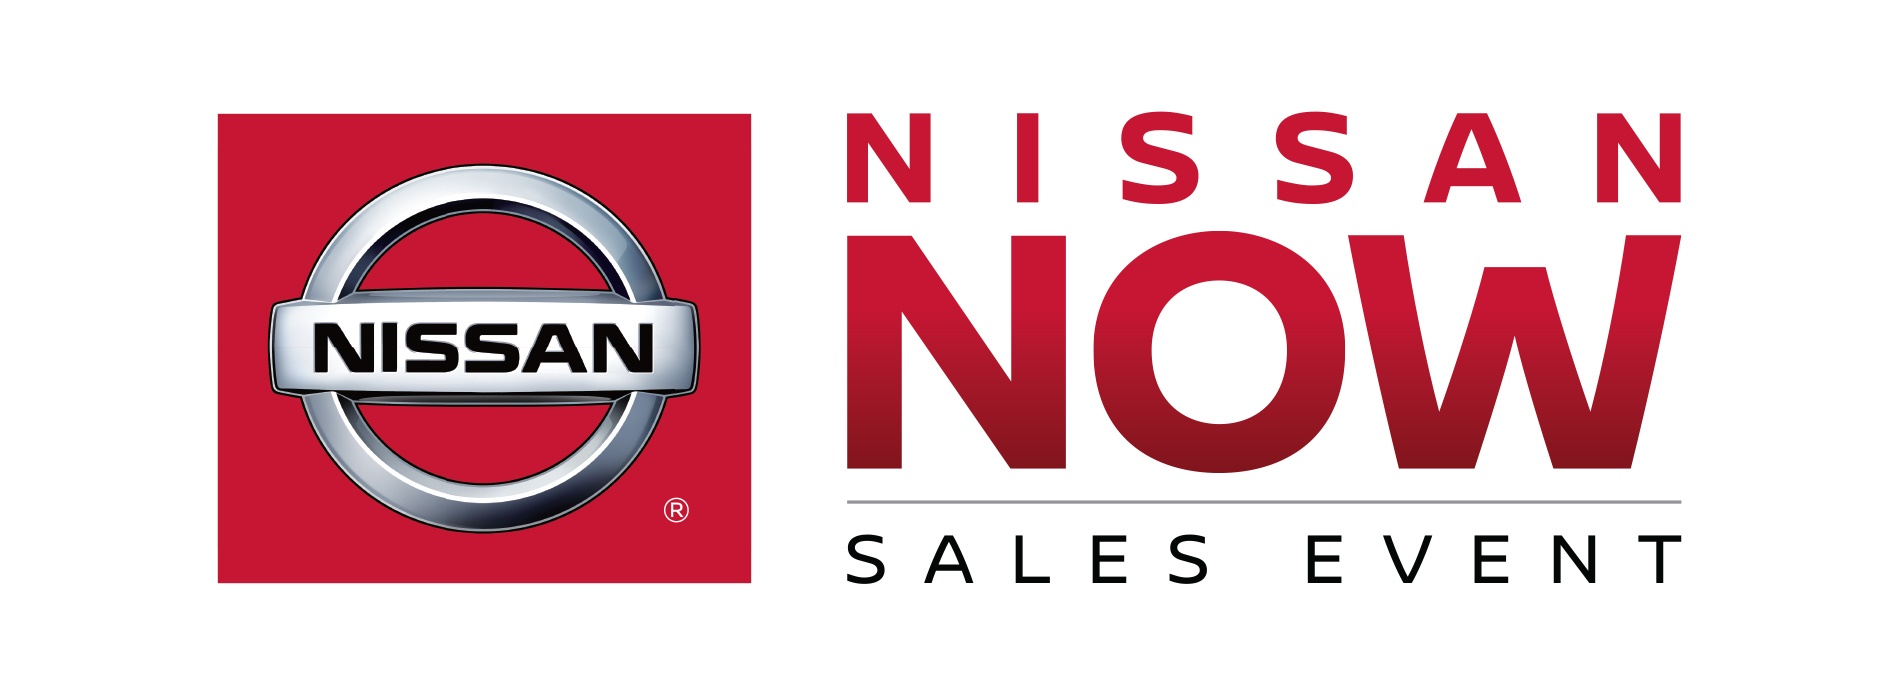 Nissan Now